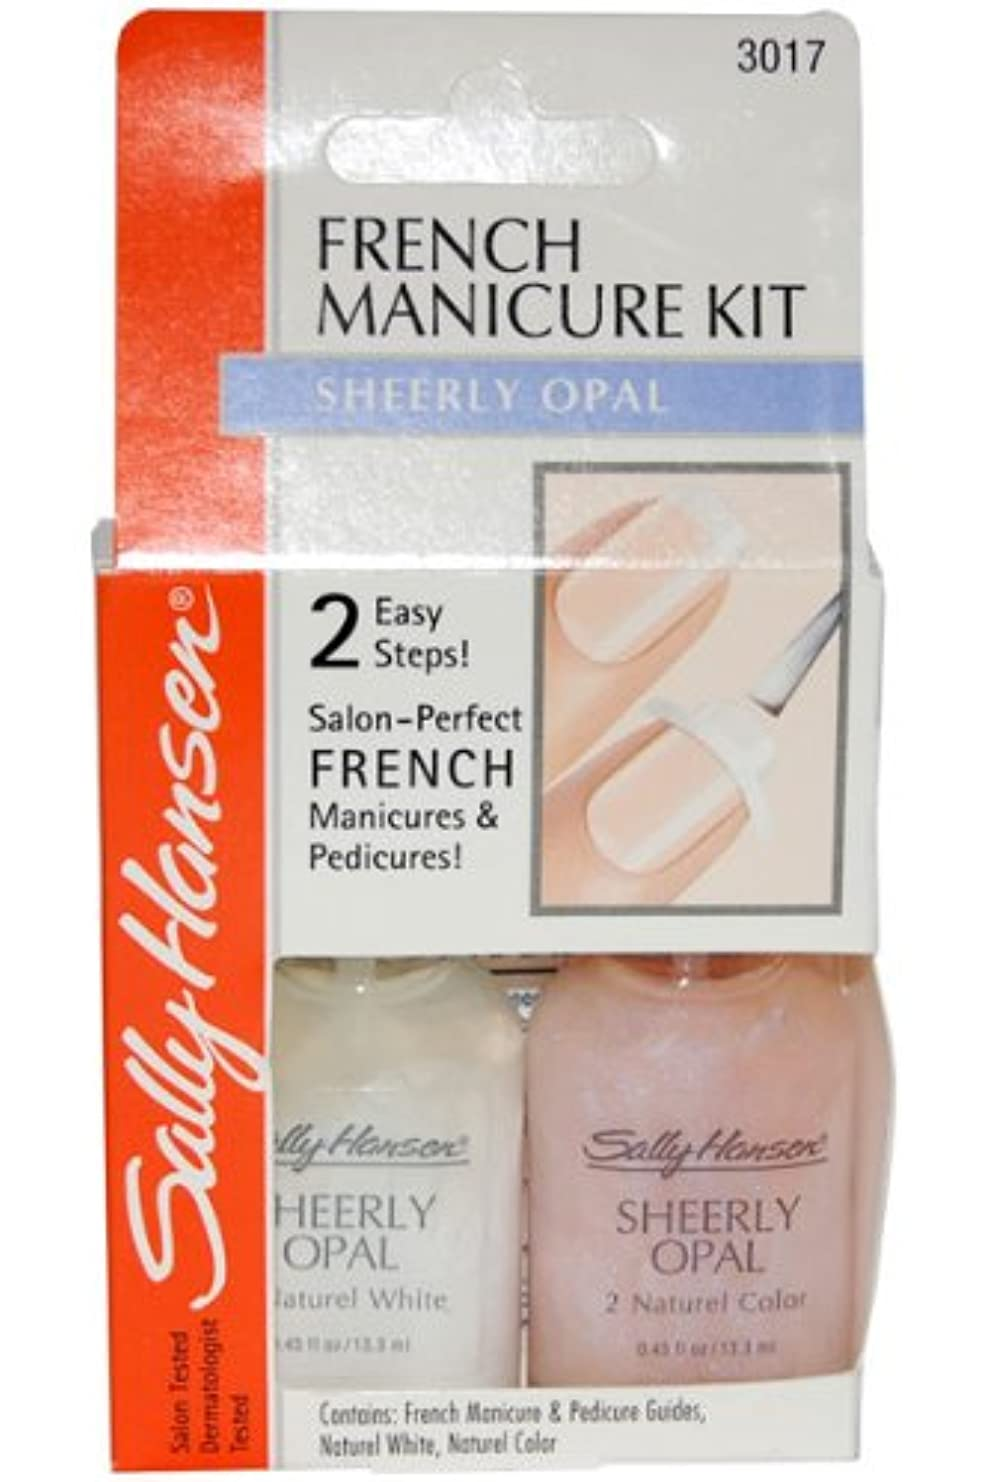 SALLY HANSEN FRENCH MANICURE KIT #3017 SHEERLY OPAL